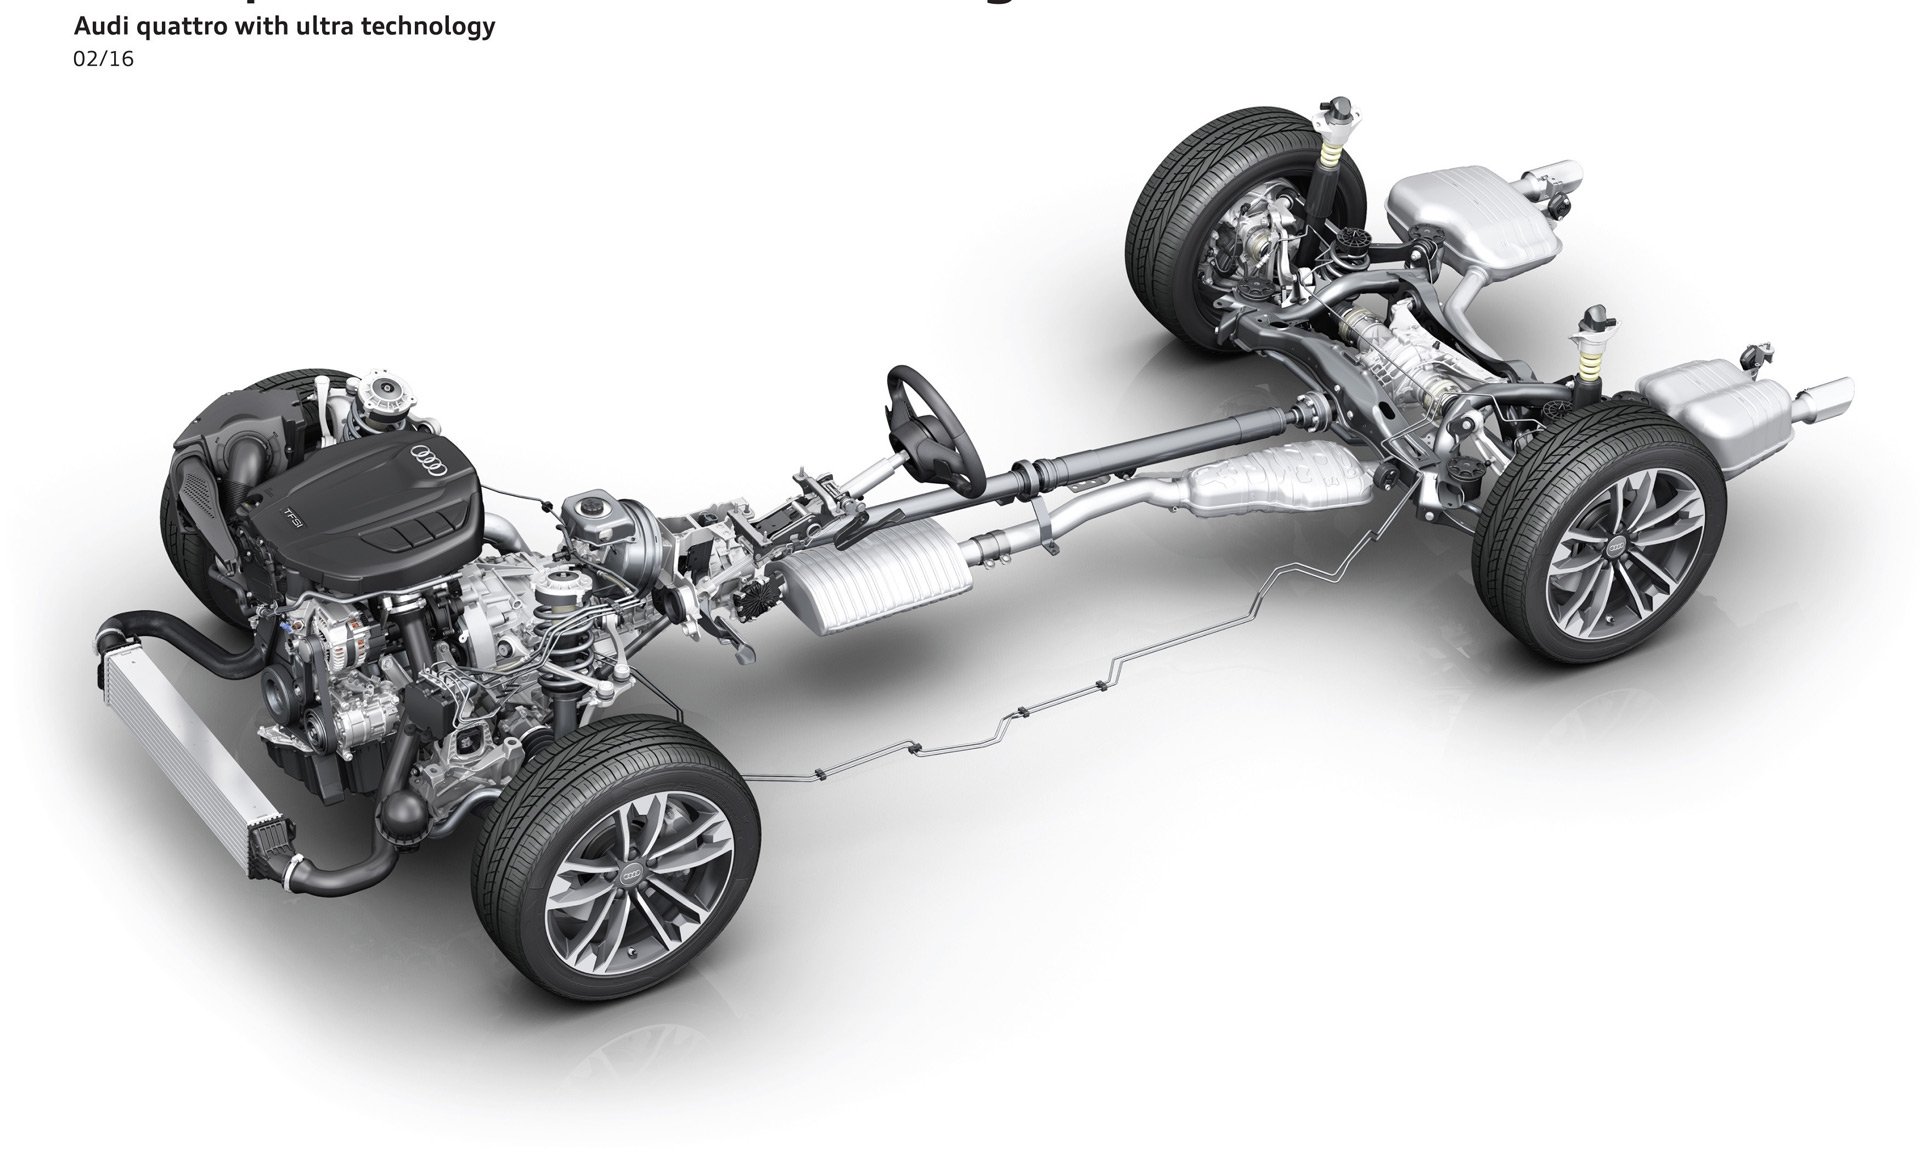 Audi unveils more efficient quattro ultra all-wheel-drive system